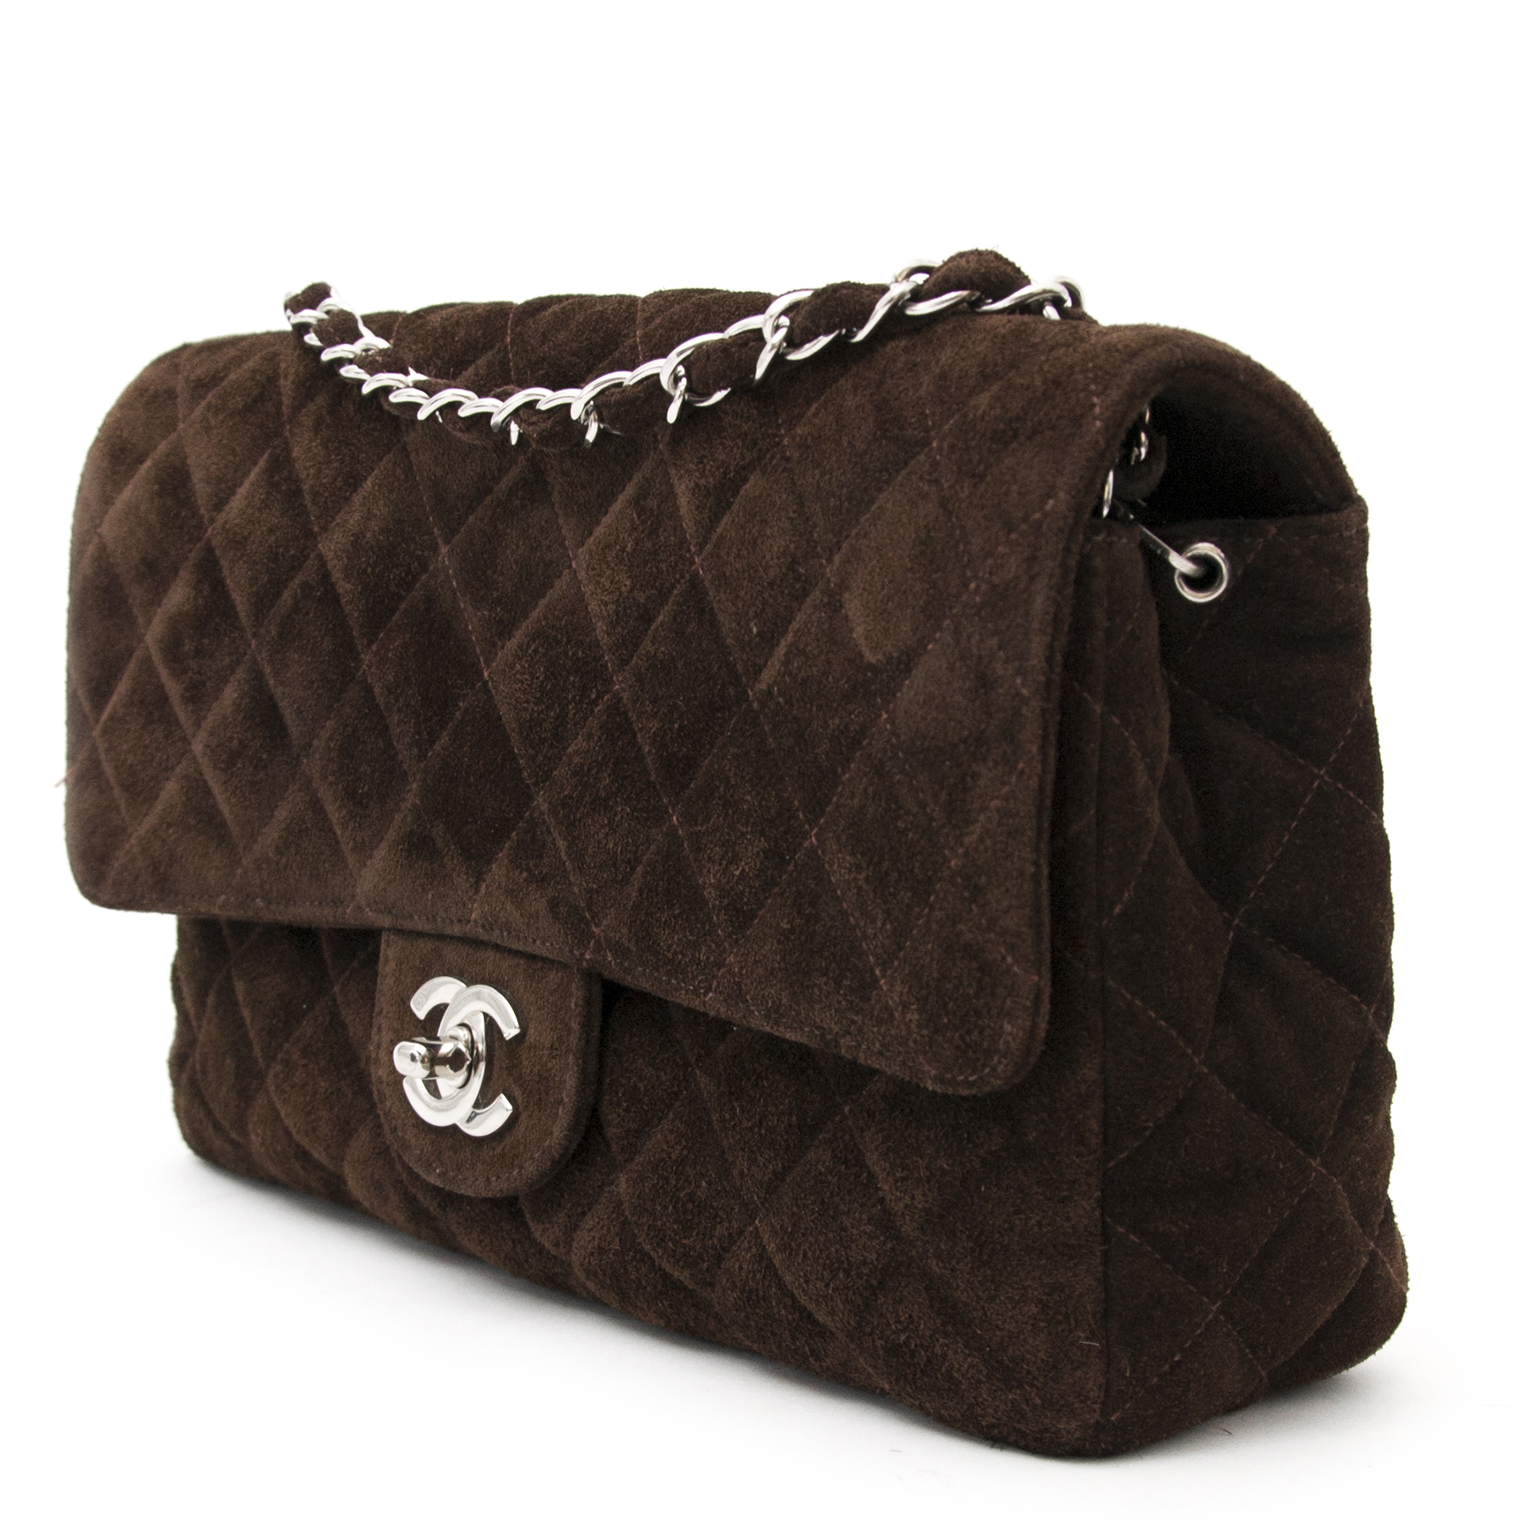 529182d01eb8 ... We buy and sell your secondhand designer luxury bags for the best price  · Chanel